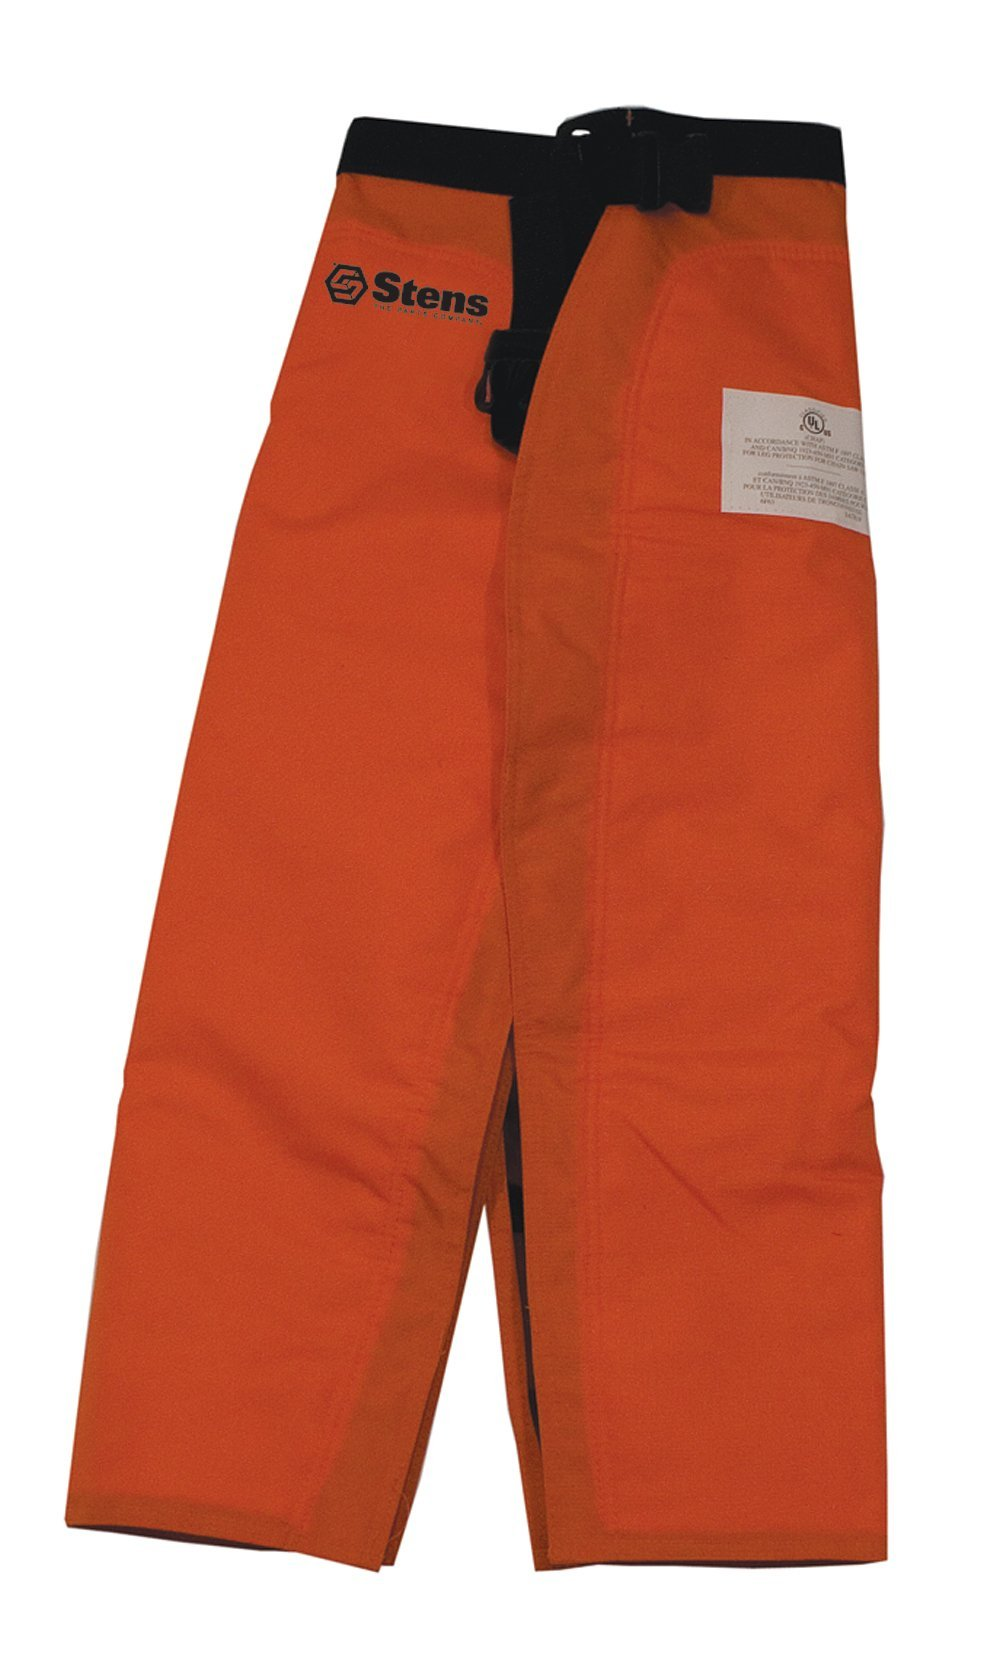 Stens 751-073 Safety Chaps by Stens (Image #1)